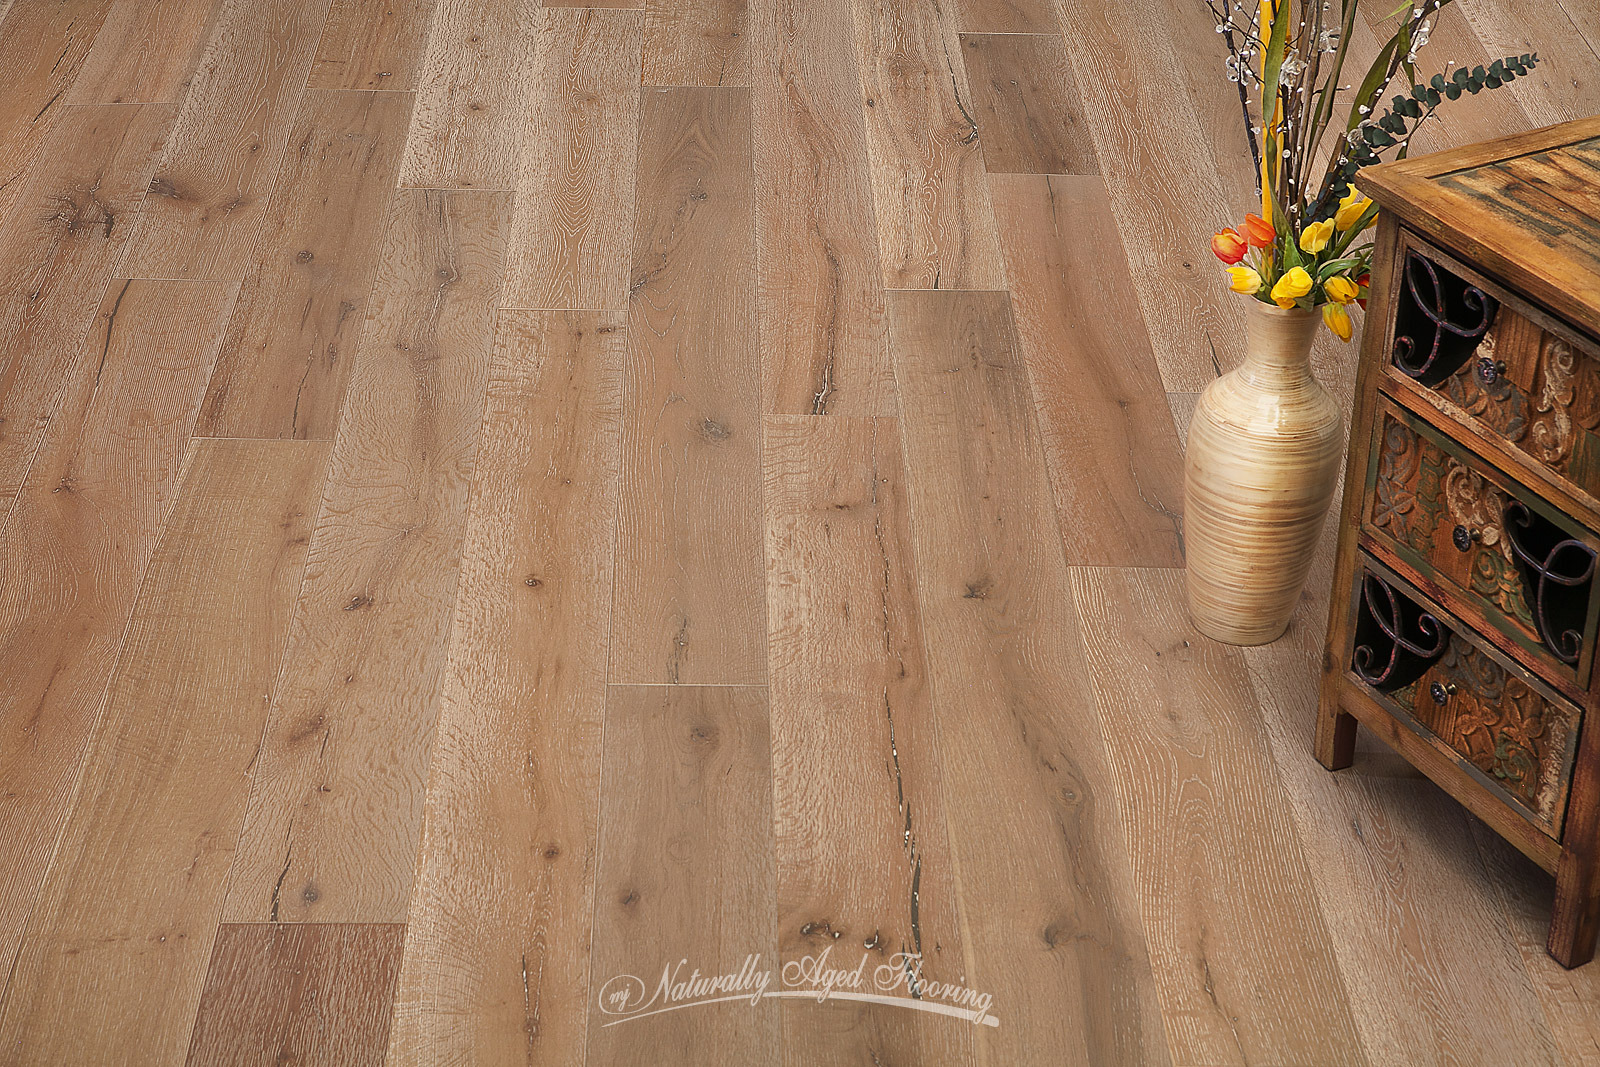 Naturally Aged Flooring Reviews - Alyssamyers